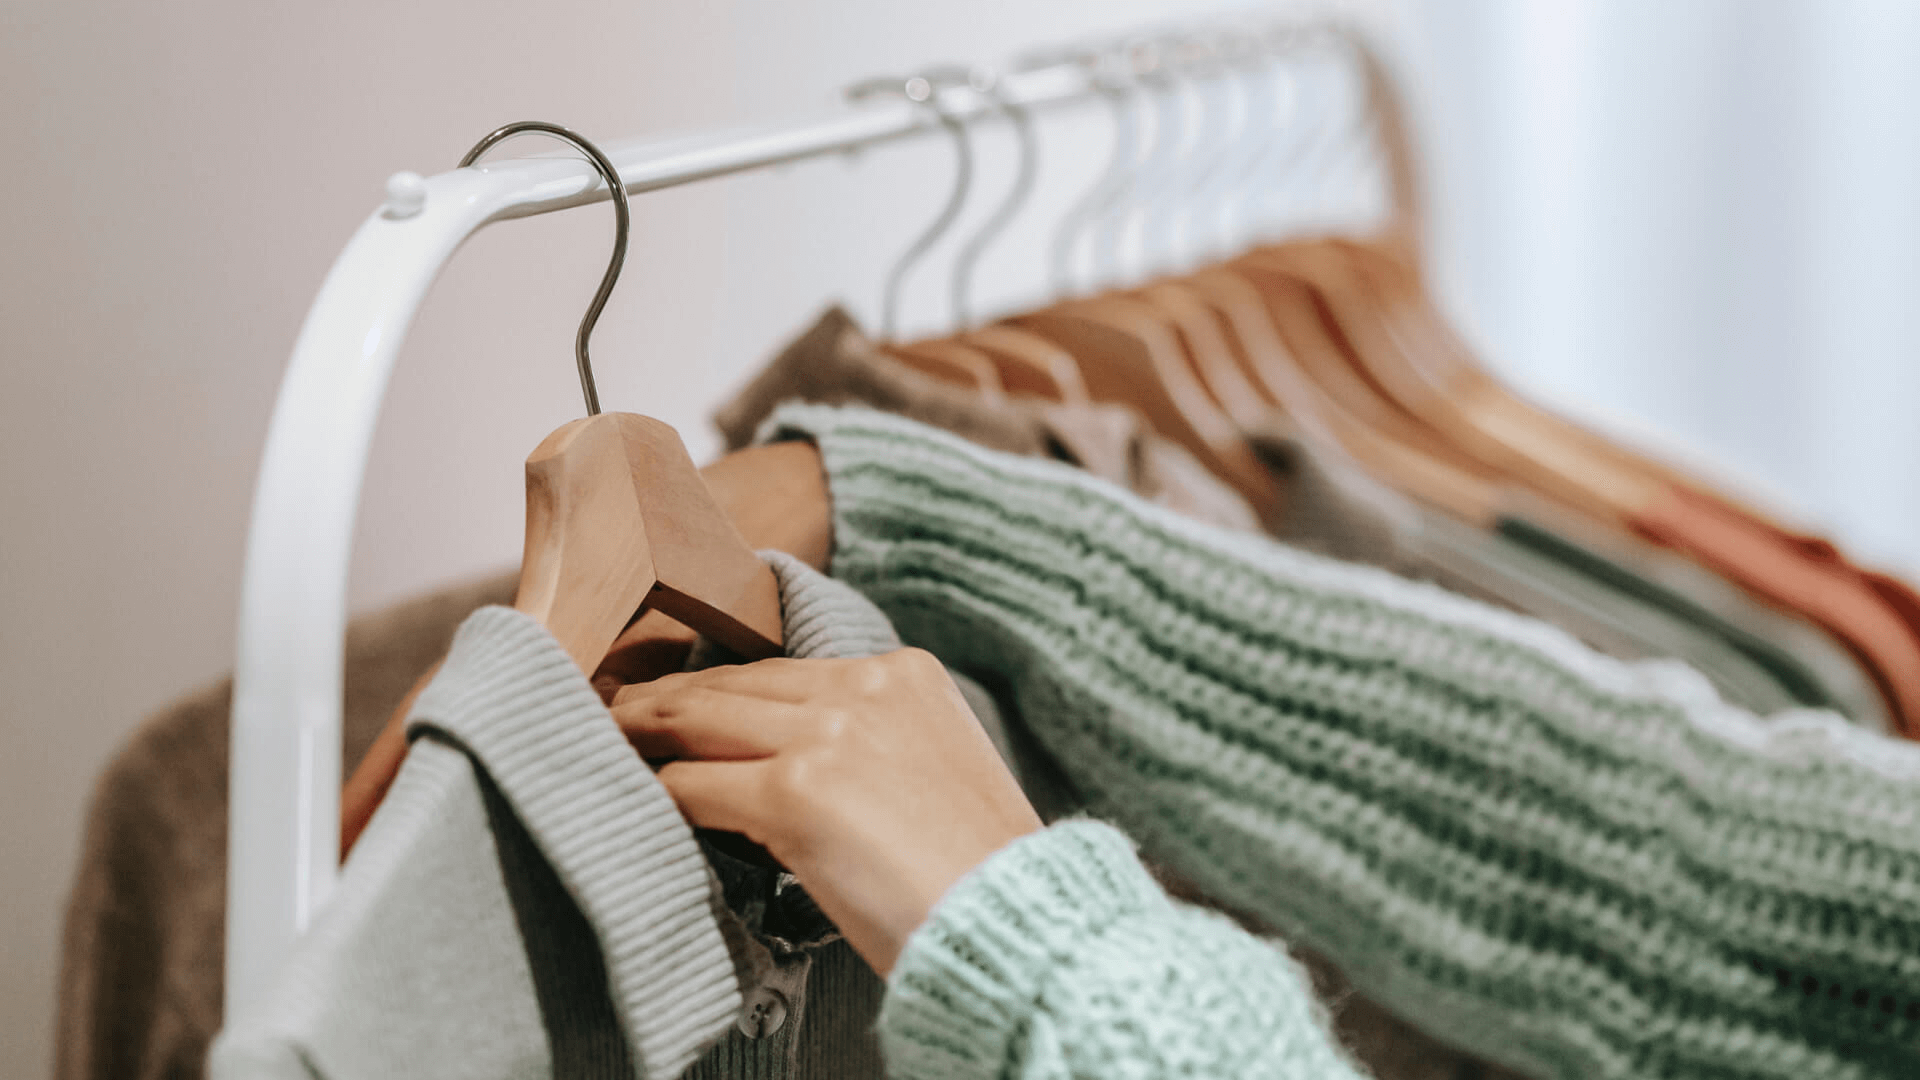 The Top 12 Ethical Brands You Need In Your Closet